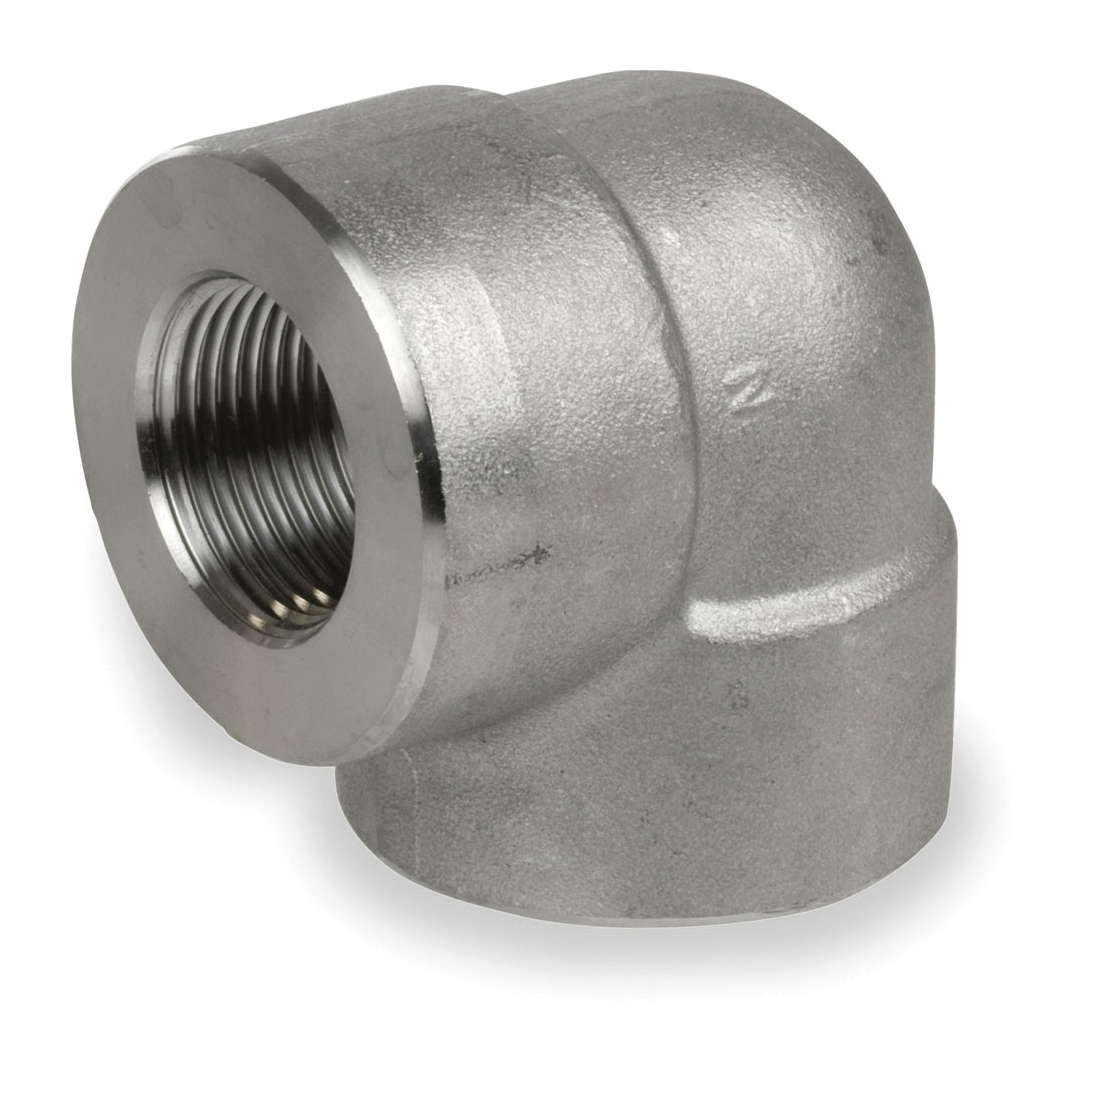 Smith-Cooper® S4034E 024 90 deg Elbow, 2-1/2 in, Threaded, 3000 lb, 304L Stainless Steel